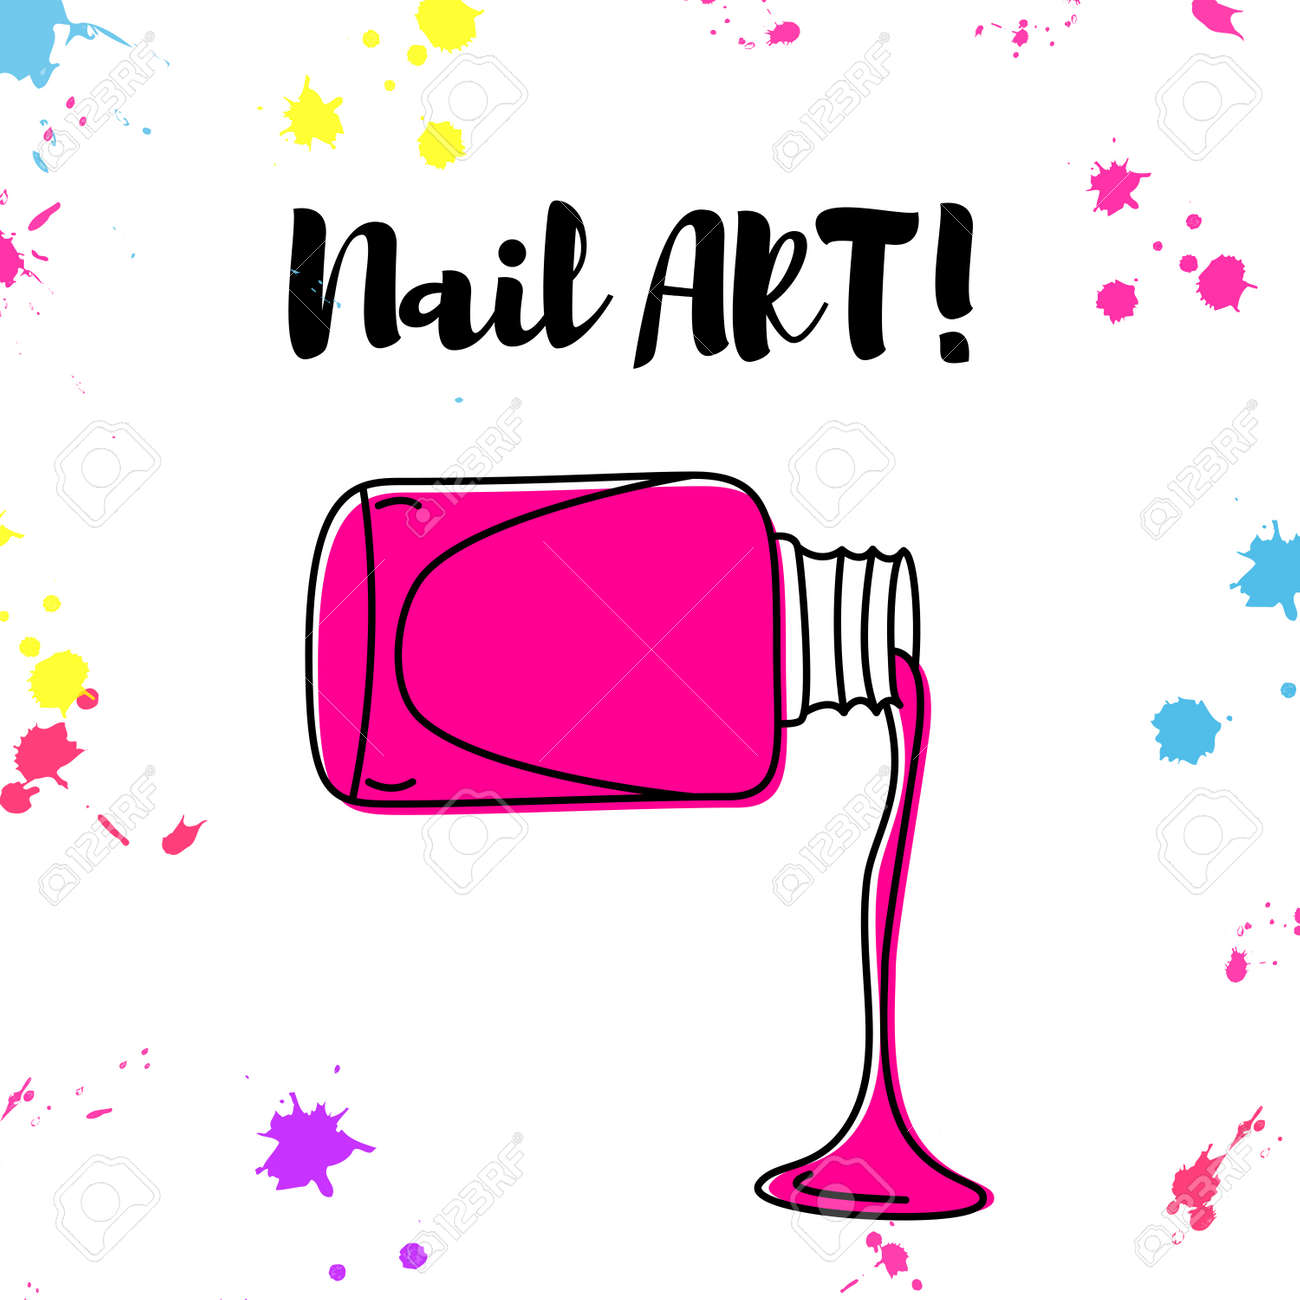 Nail Polish Spill Poster With Colorful Splashes And Text \